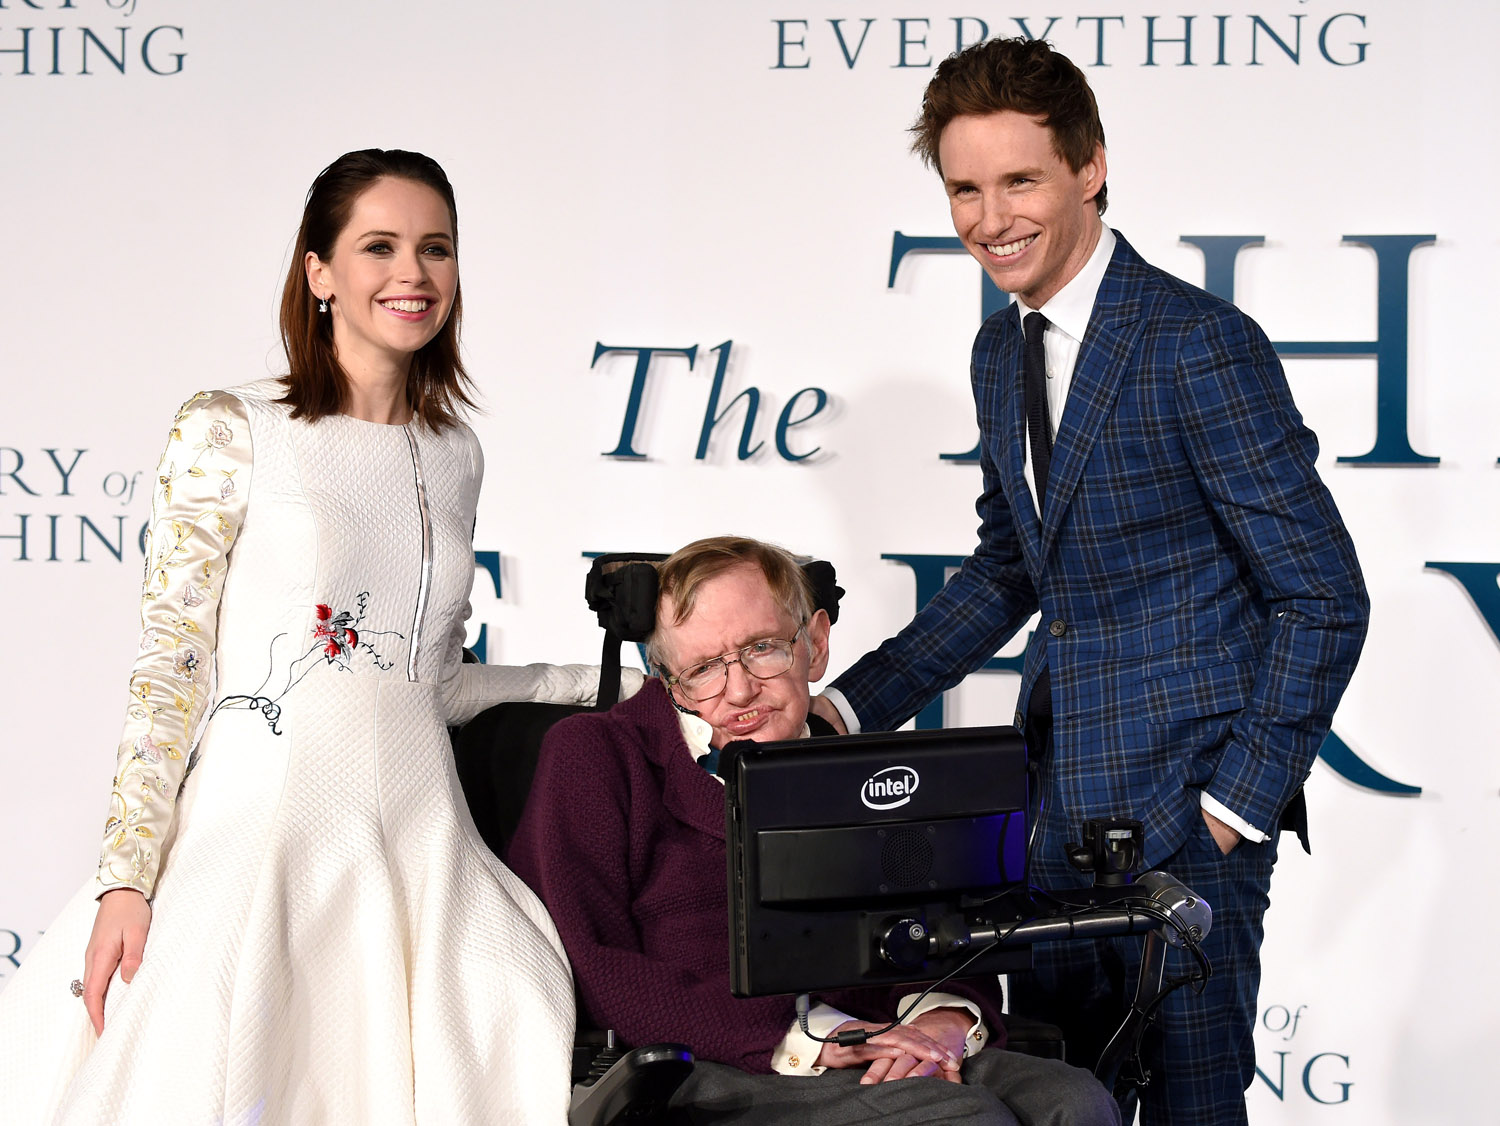 Felicity Jones, Professor Stephen Hawking and Eddie Redmayne attend the UK Premiere of  The Theory Of Everything  at Odeon Leicester Square on Dec. 9, 2014 in London, England.